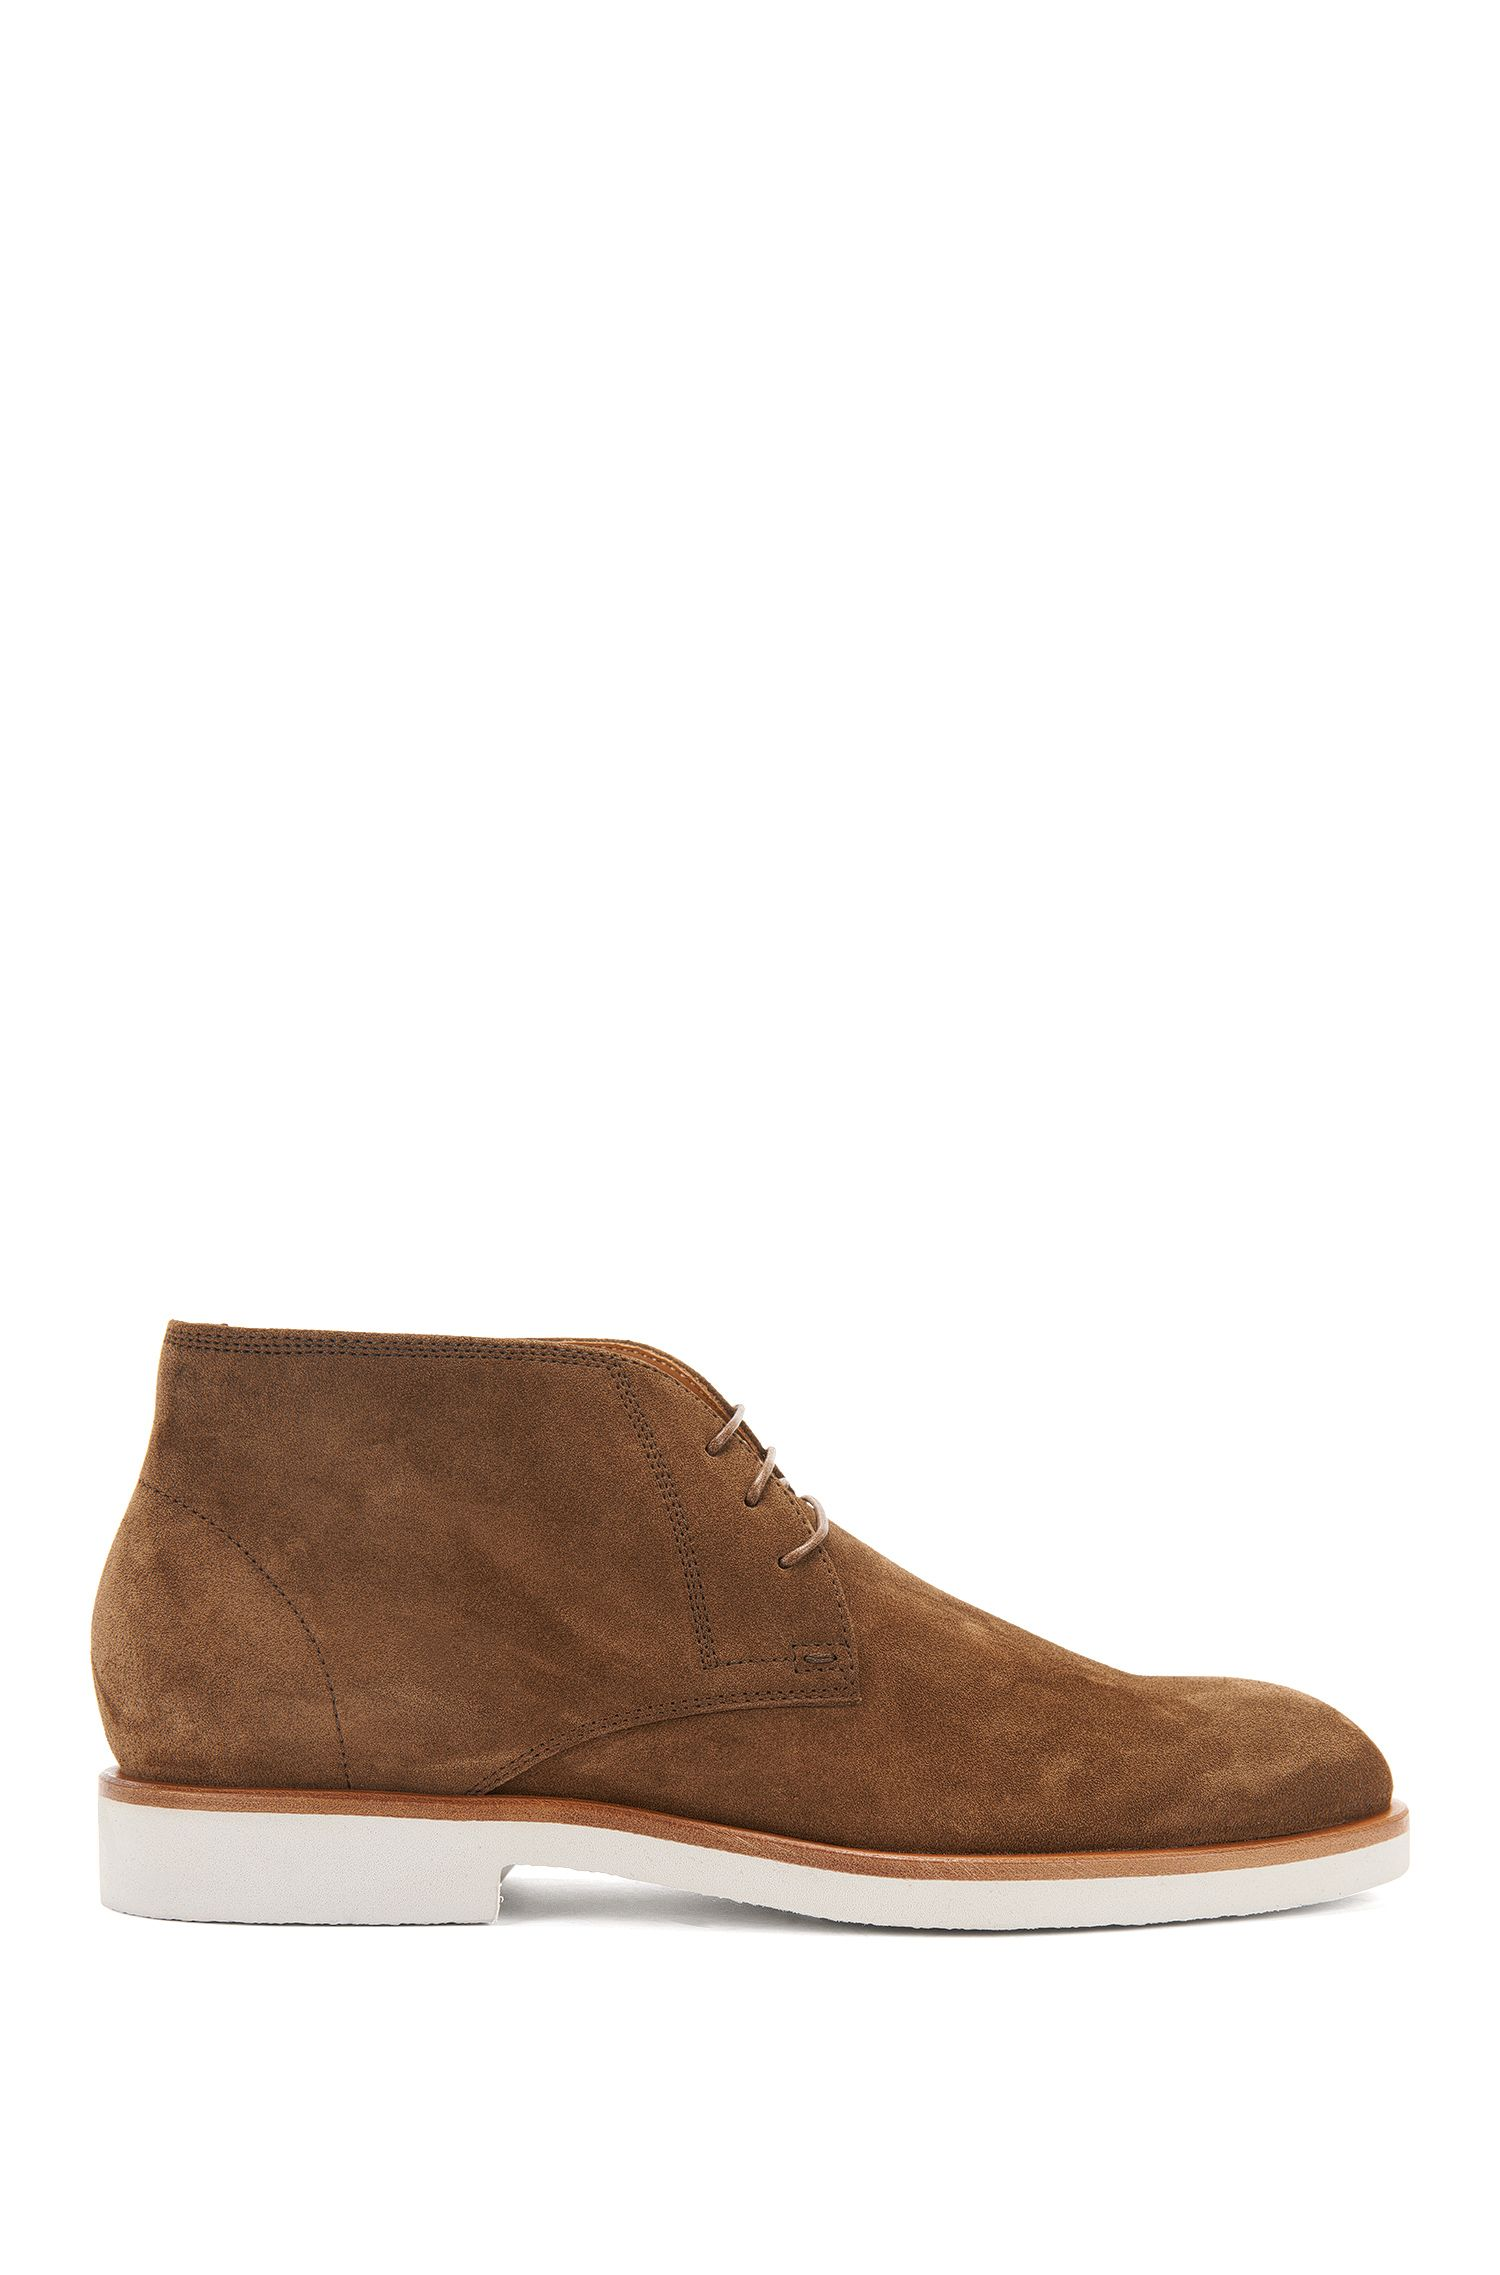 Suede desert boots on a crêpe sole